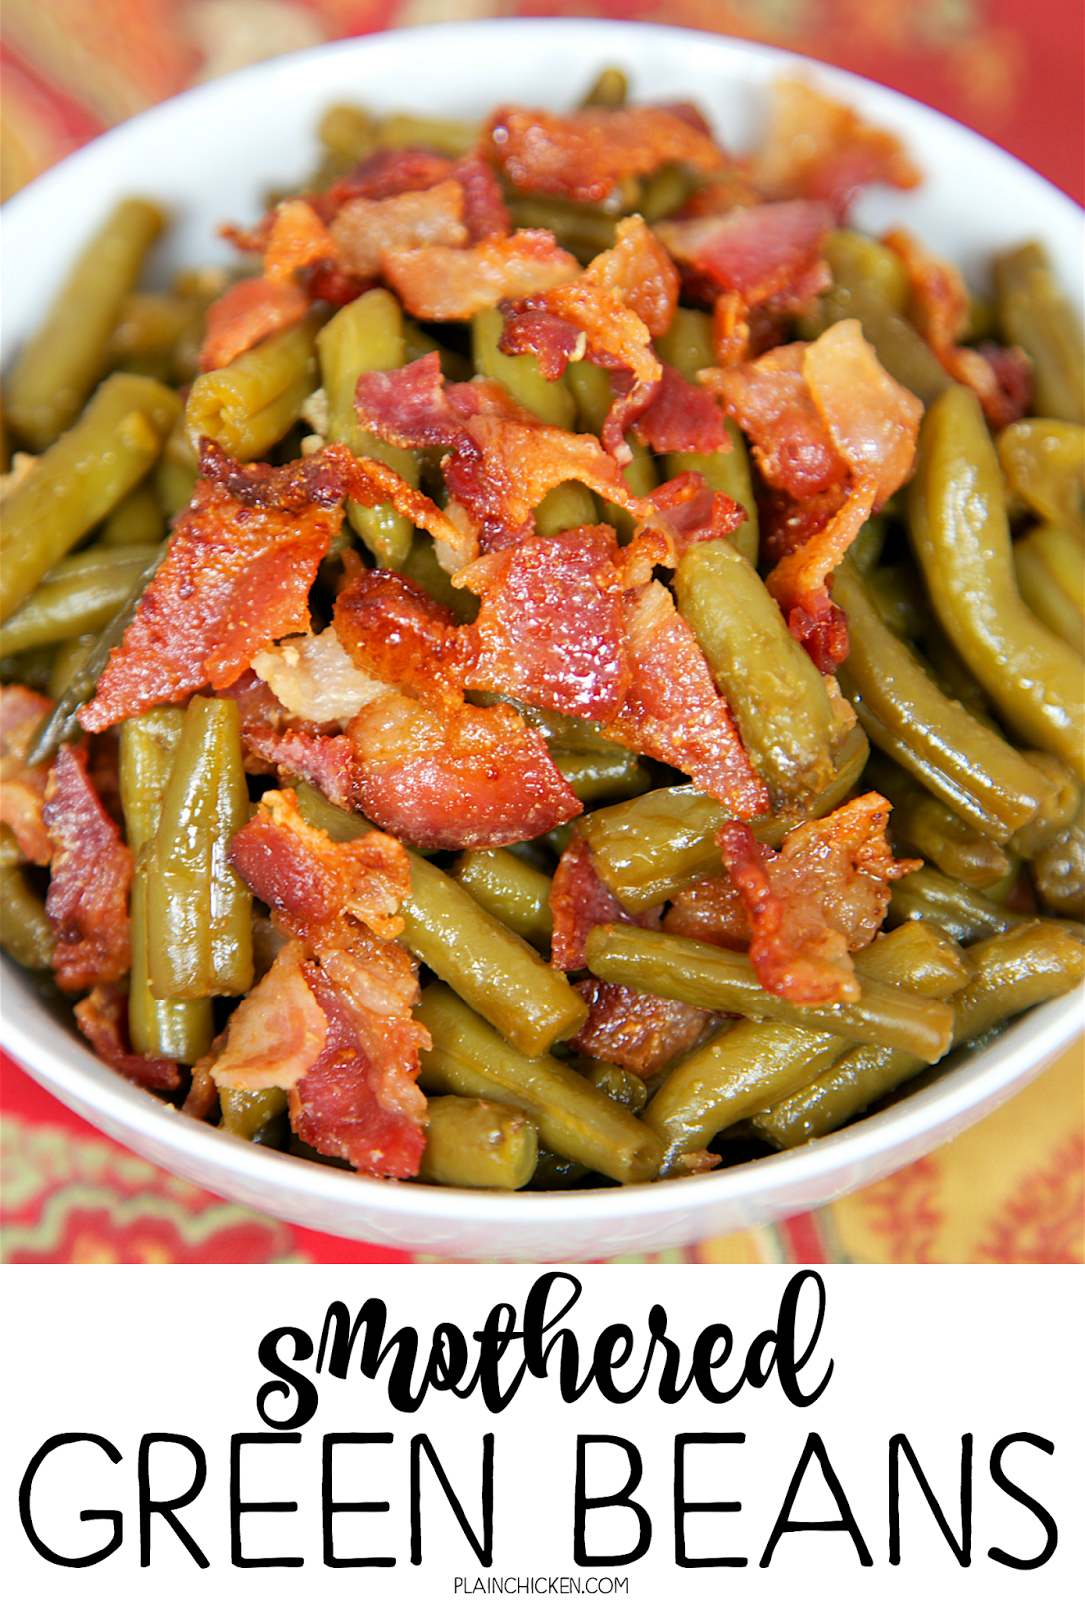 Smothered Green Beans - canned green beans baked in bacon, brown sugar, butter, soy sauce and garlic. This is the most requested green bean recipe in our house.Everybody gets seconds. SO good!! Great for a potluck. Everyone asks for the recipe! Super easy to make.